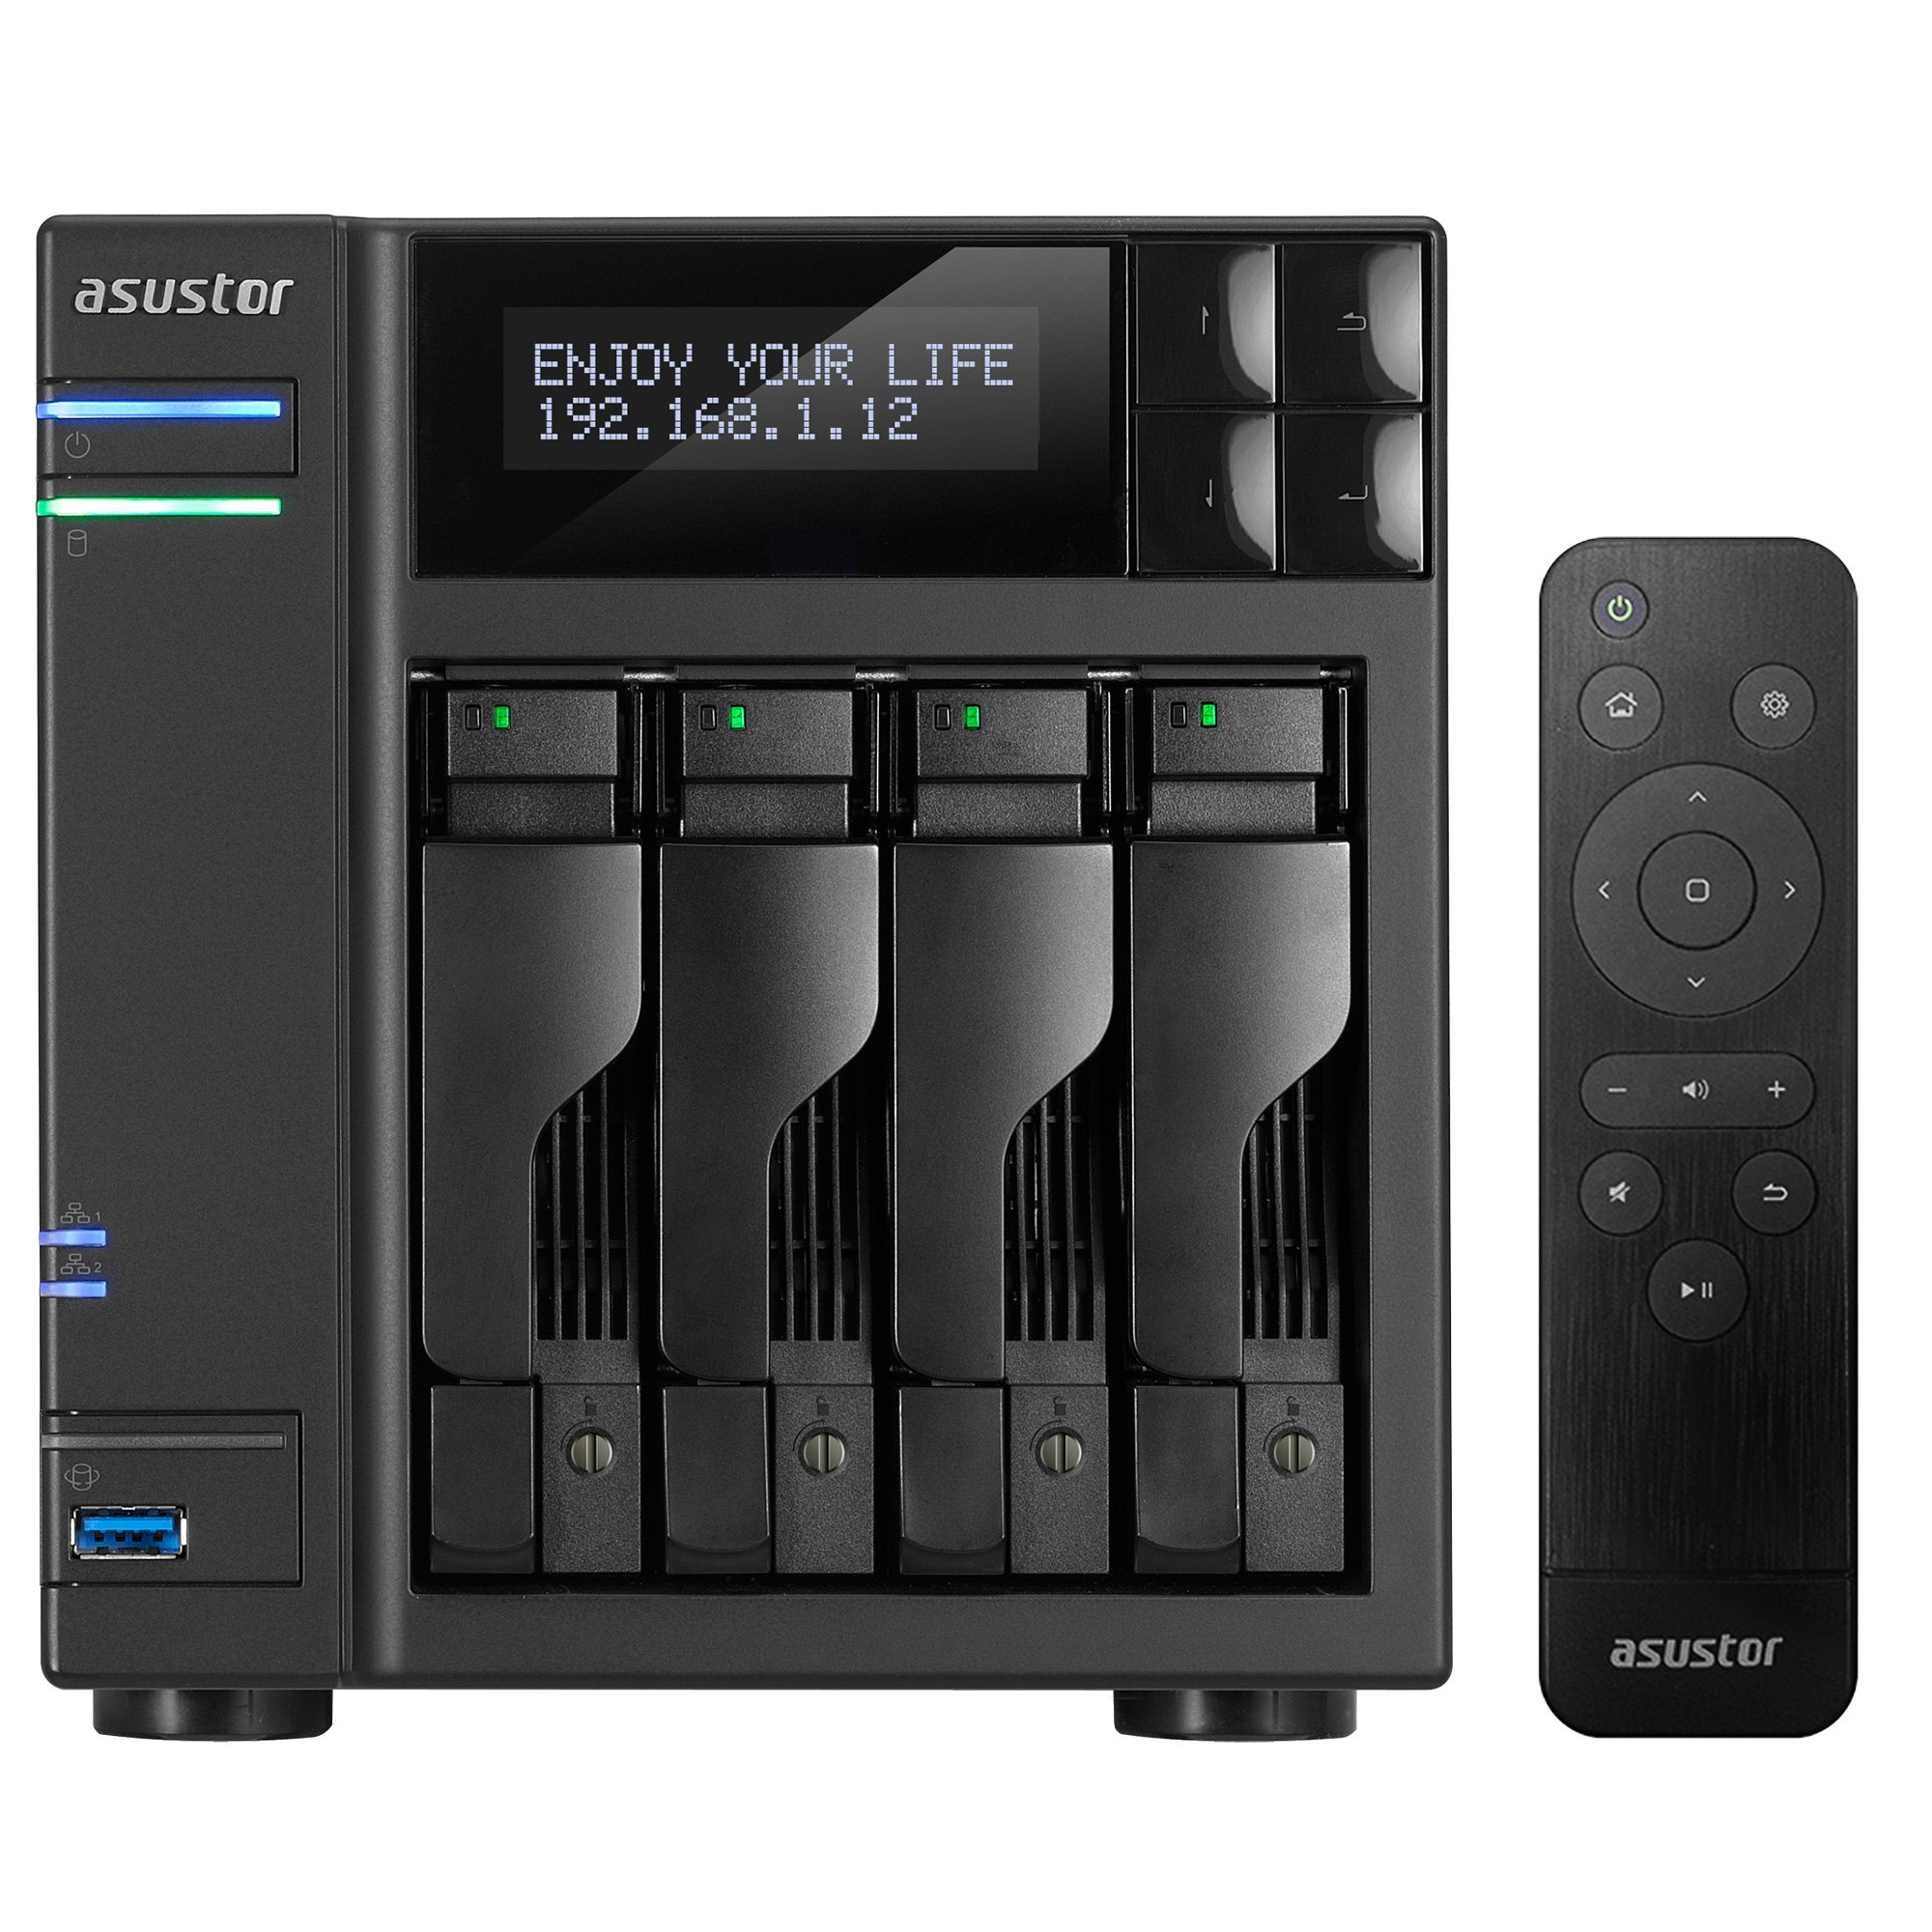 Asustor AS6404T, 4-Bay NAS (Diskless), Intel 1.5GHz Quad-Core, 8GB RAM, Includes AS-RC13 Multimedia Remote